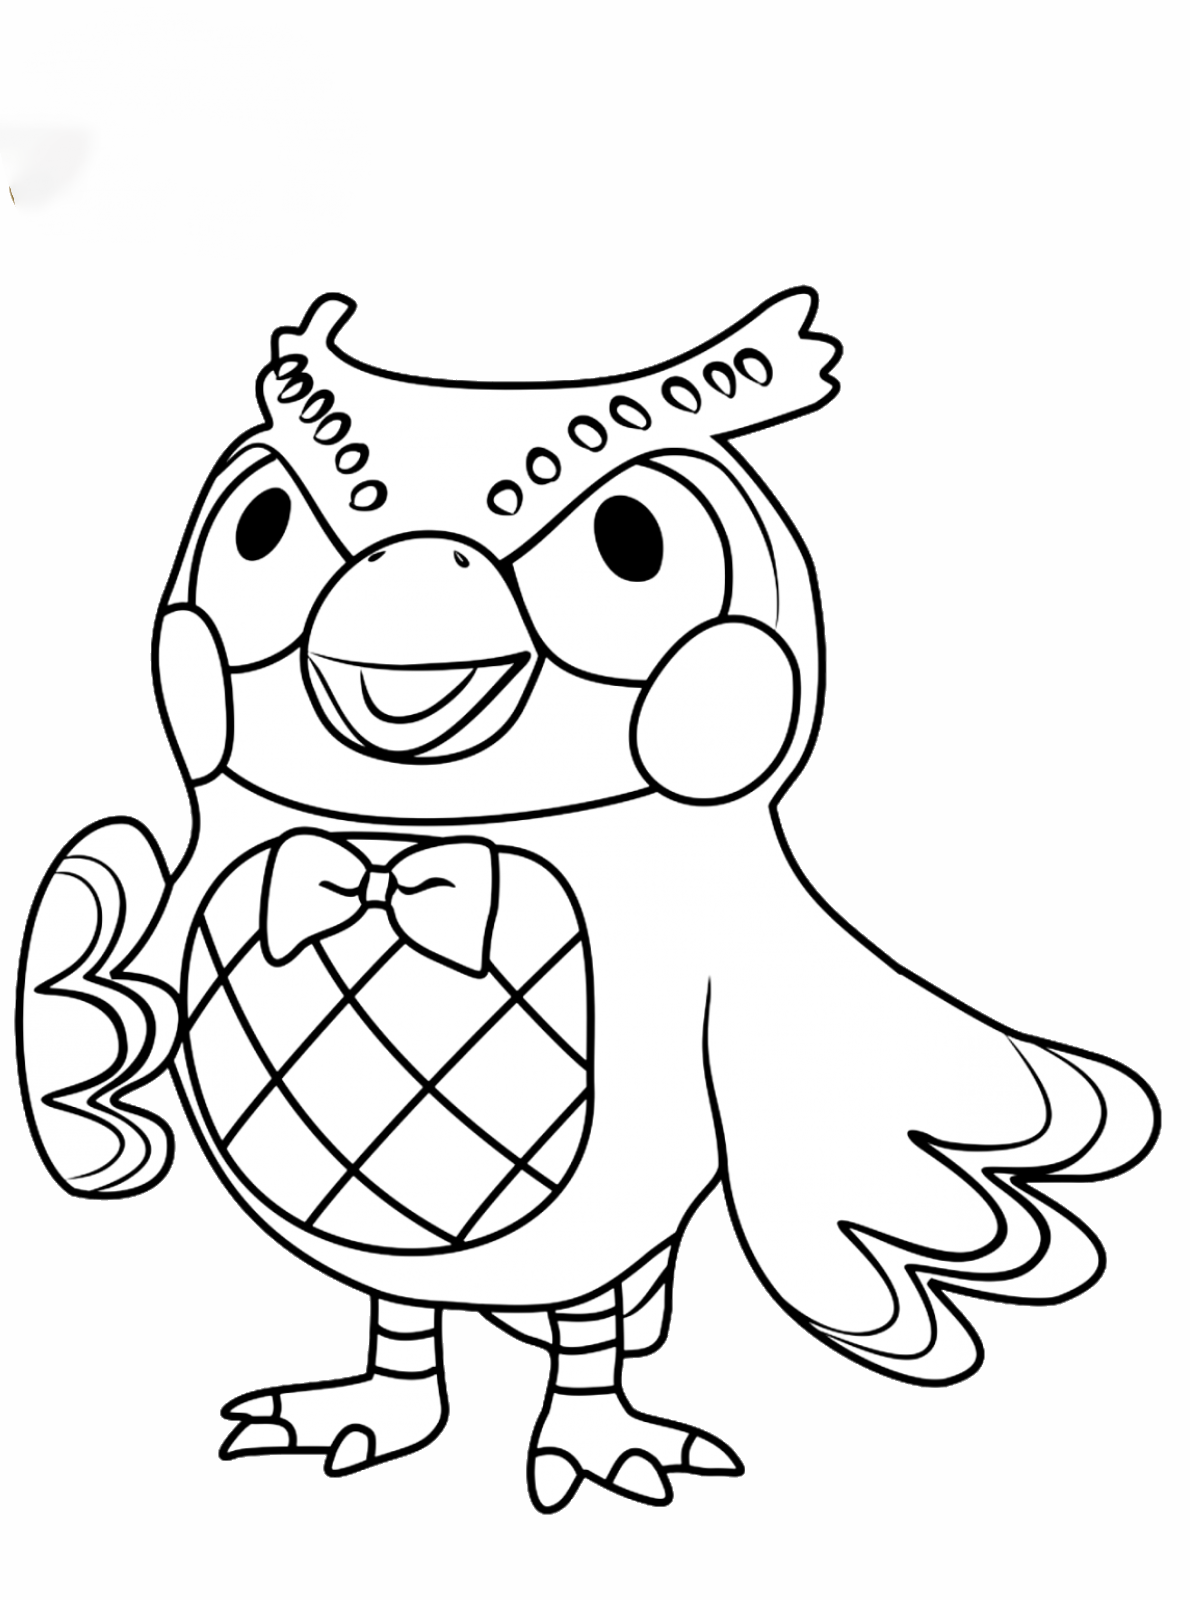 Blather Coloring Page